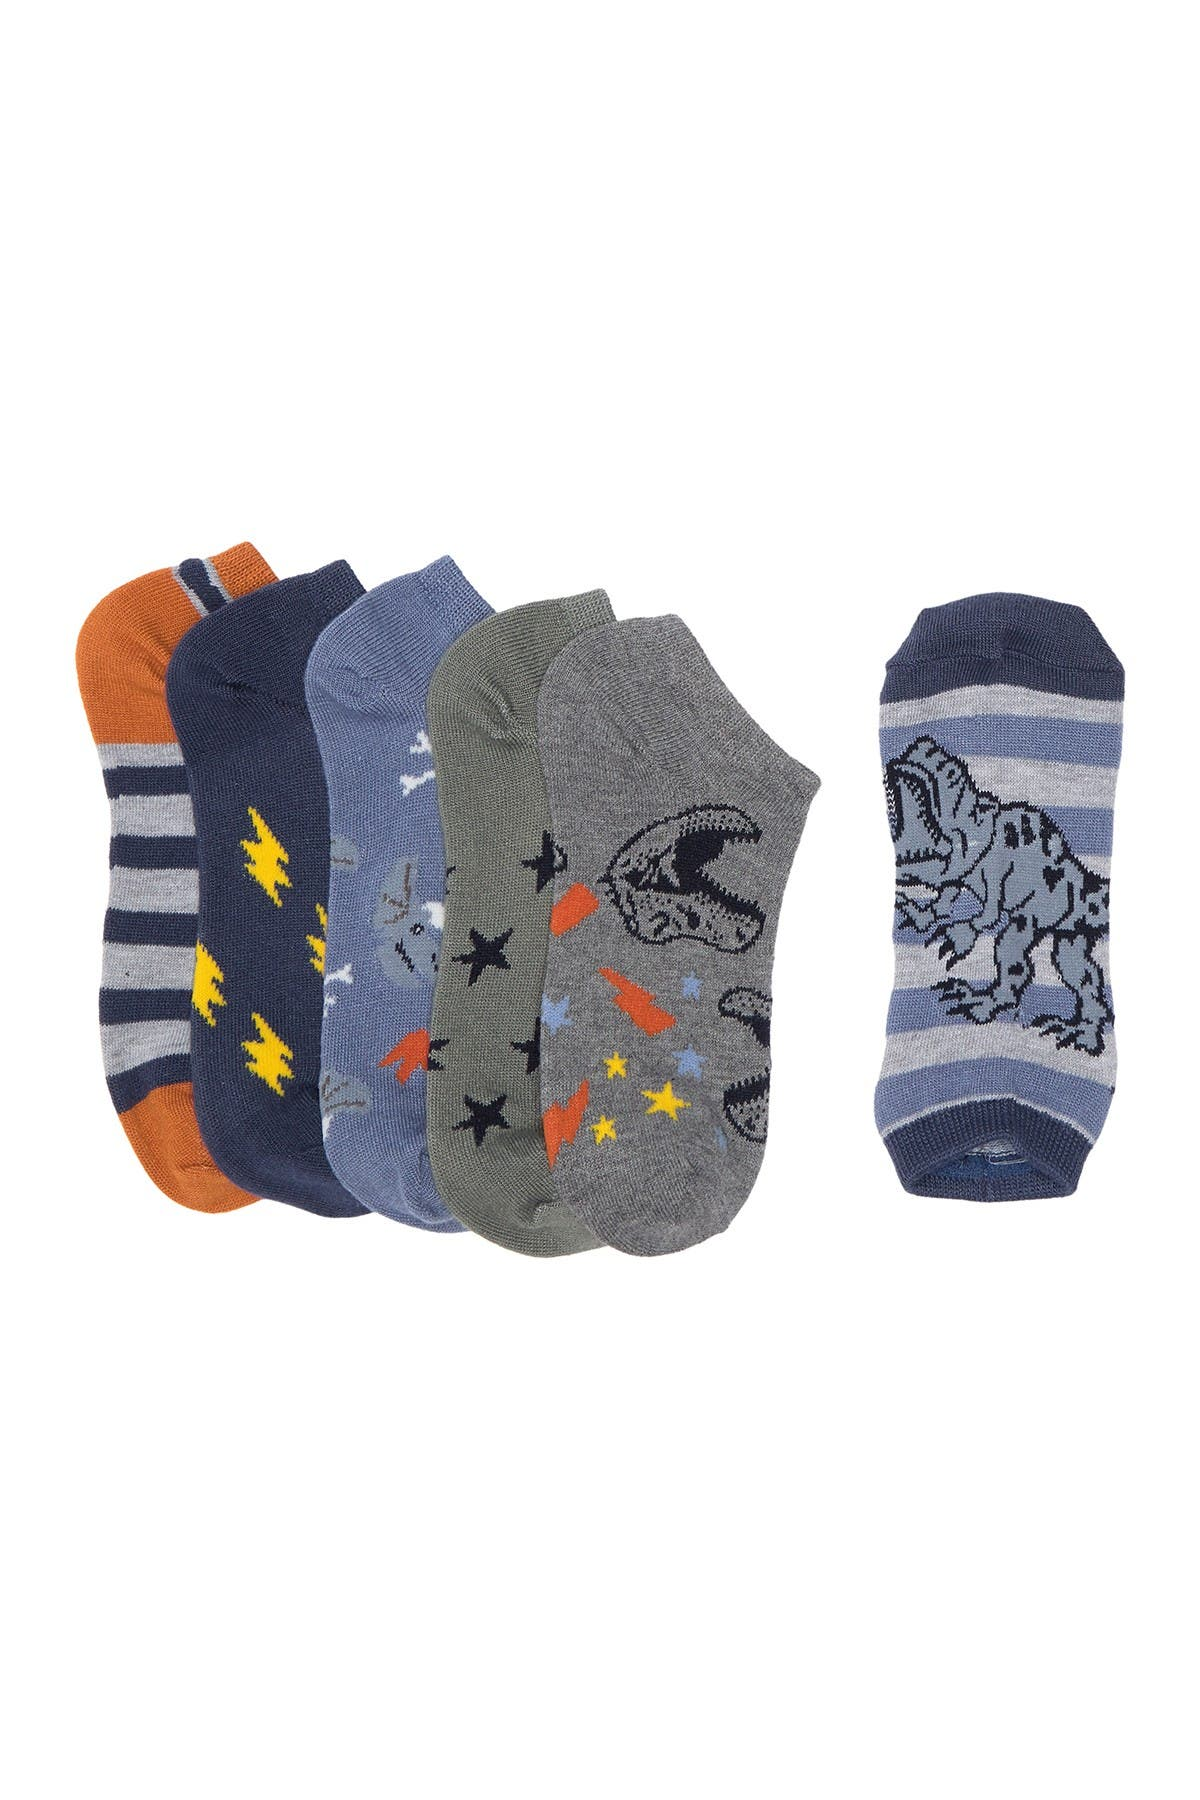 Image of Harper Canyon Dino Low Cut Socks - Pack of 6